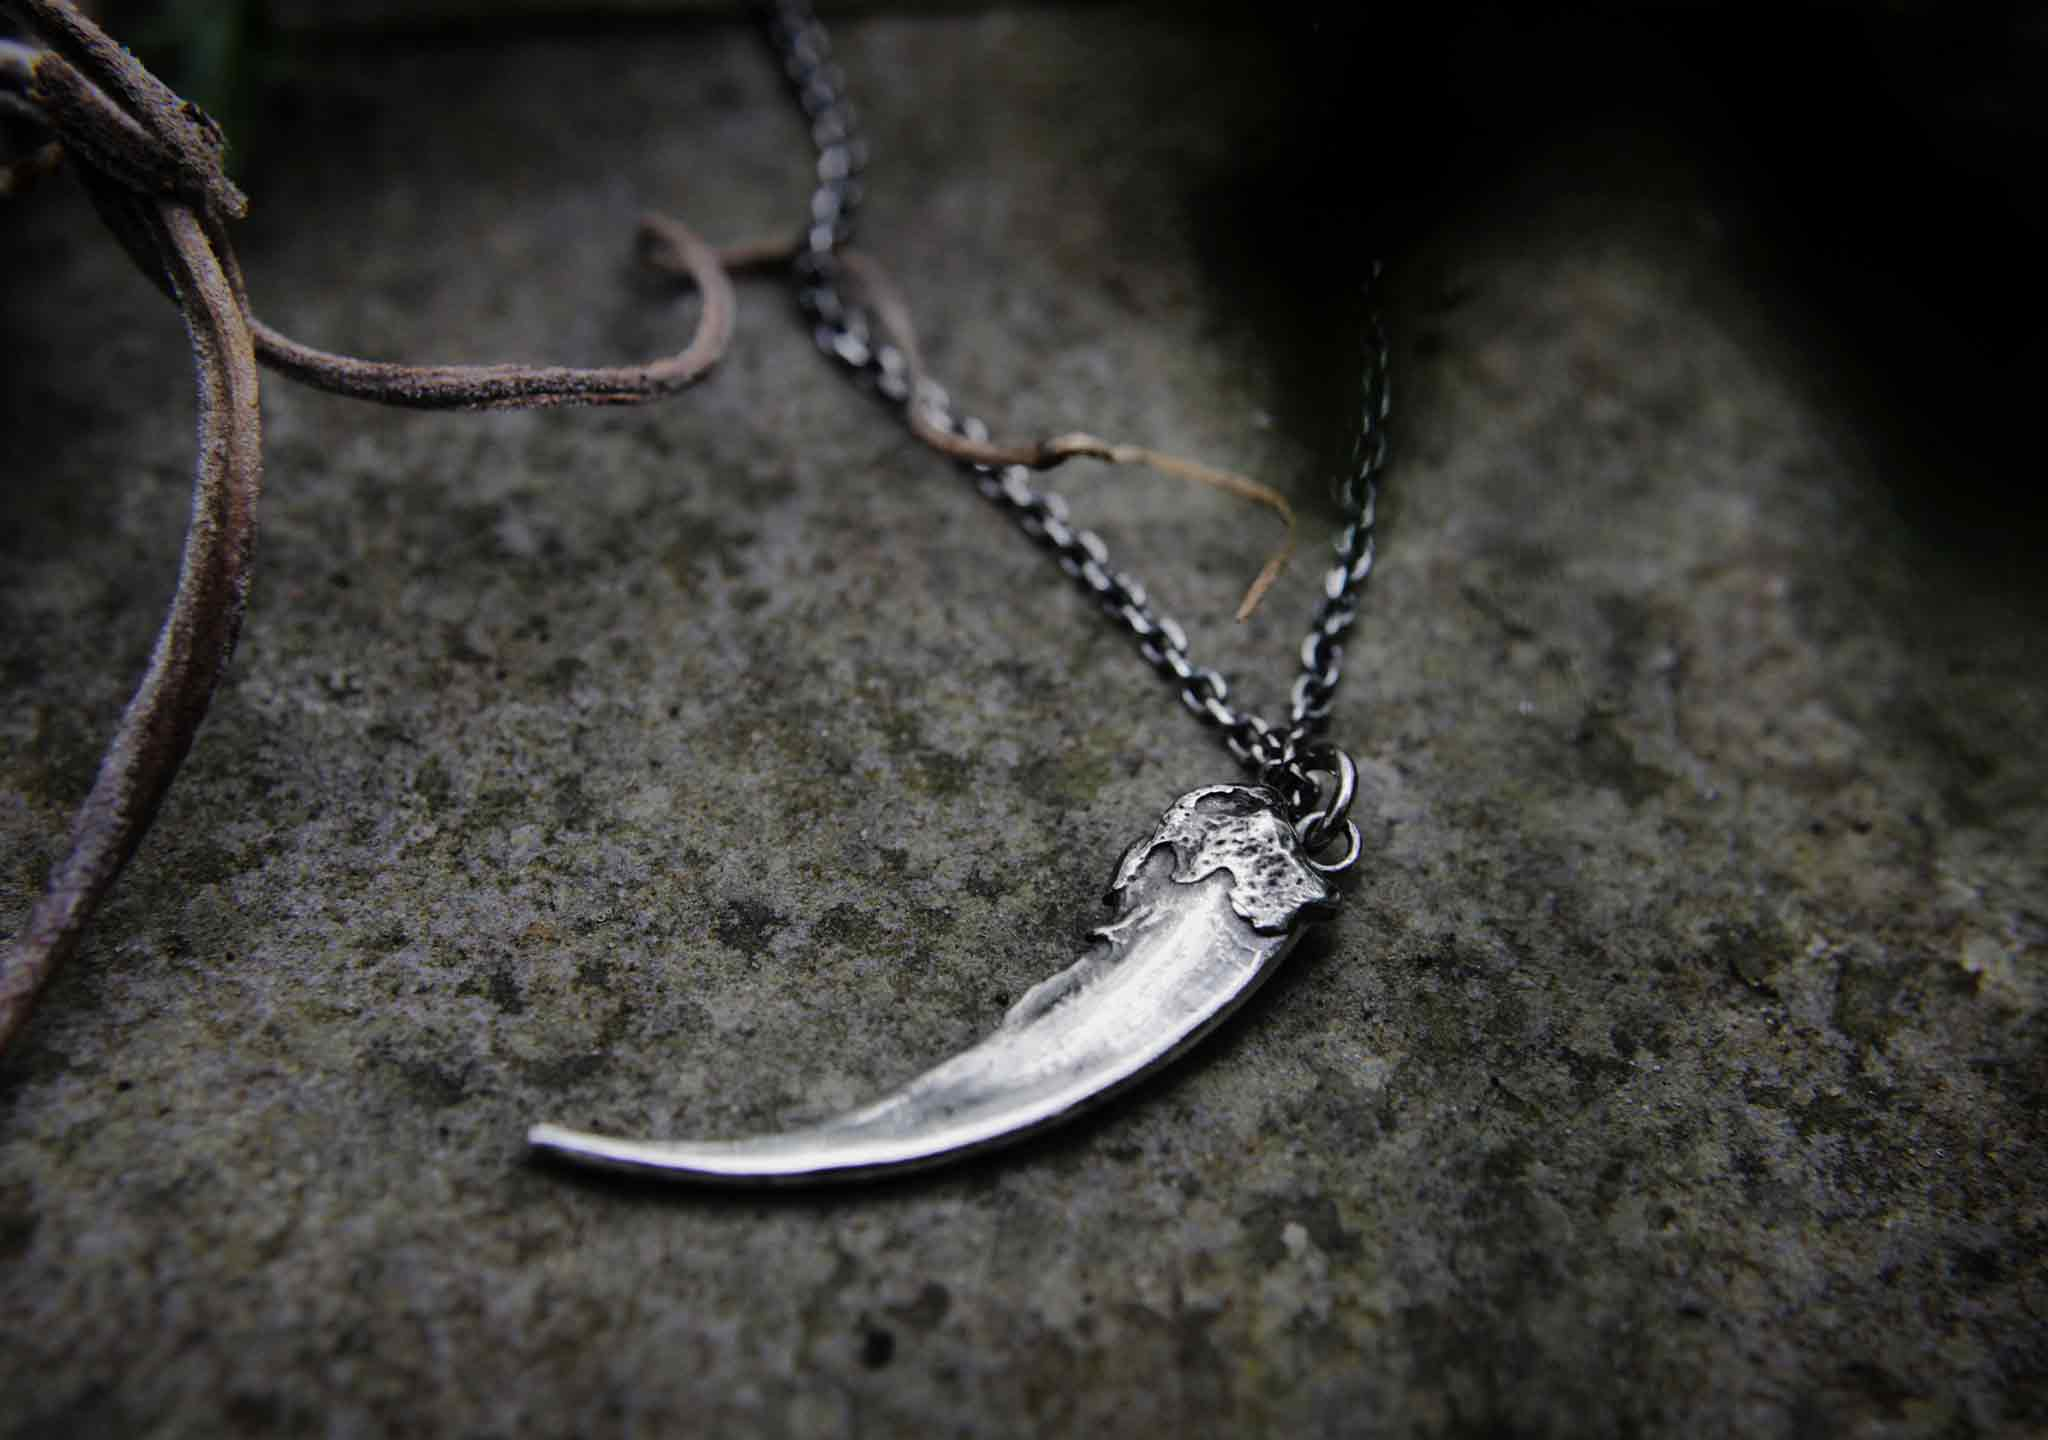 silver badger claw pendant sitting on a rock